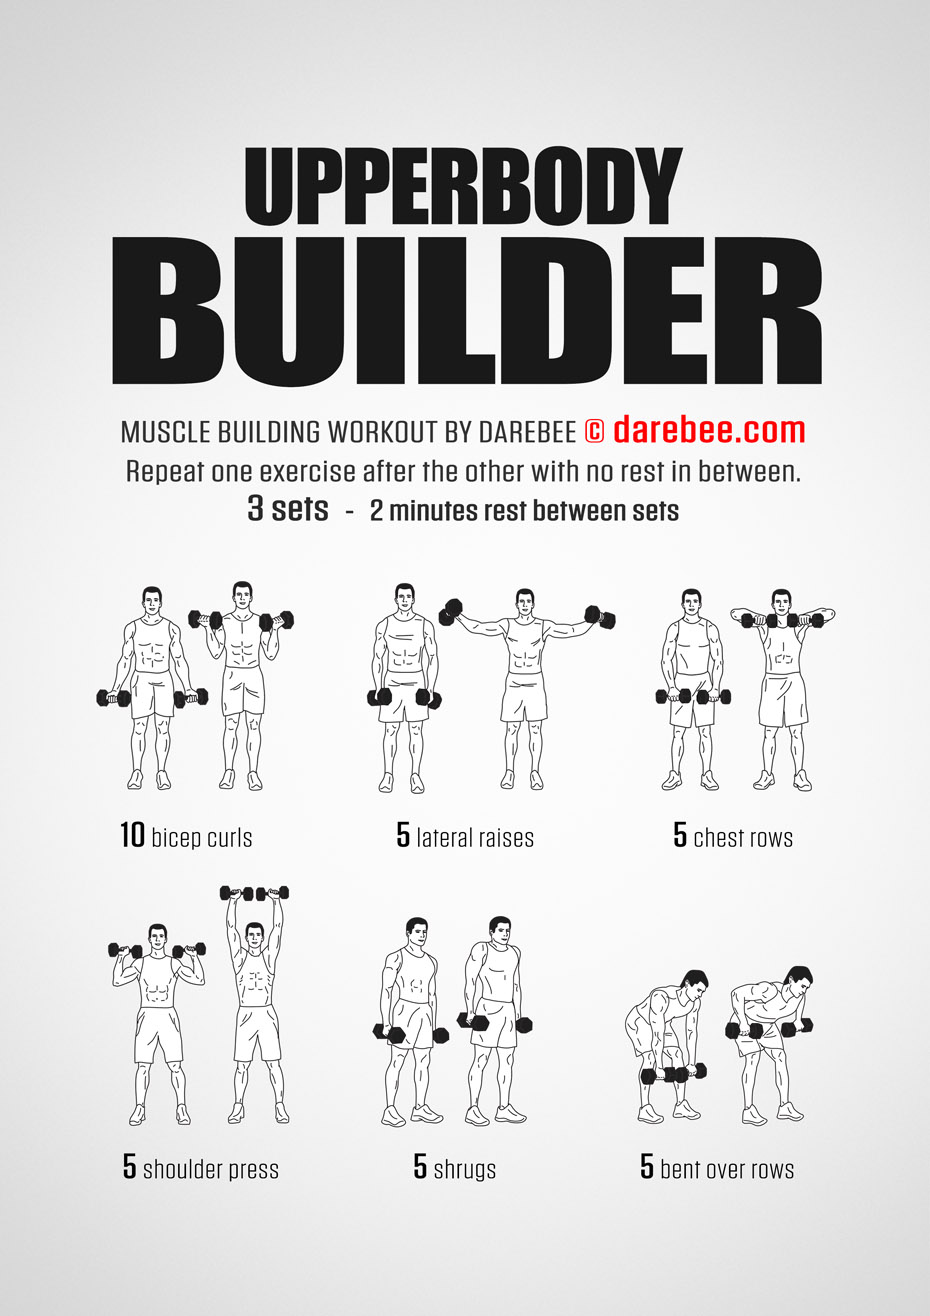 Credit for image: https://darebee.com/workouts/upperbody-builder-workout.html